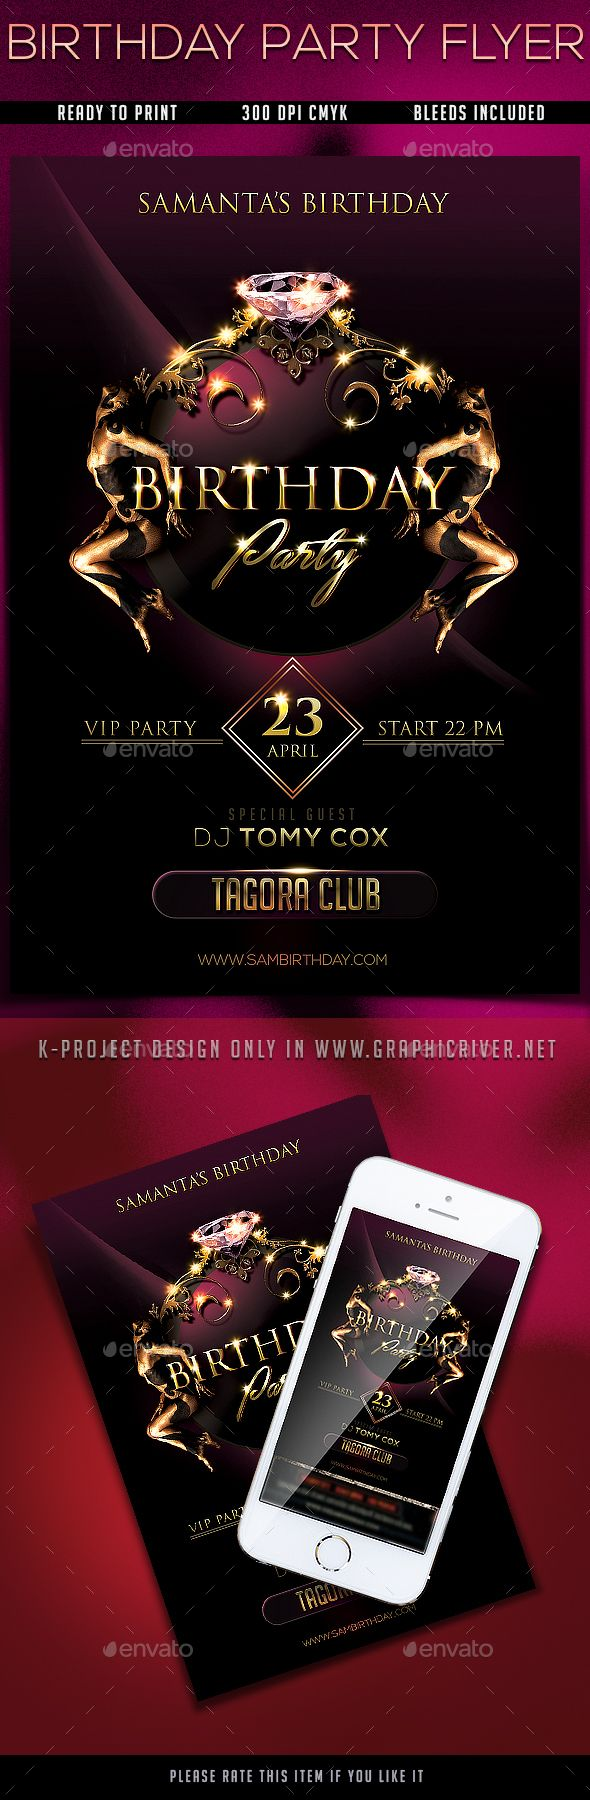 Birthday Party Flyer Design Template - Events Flyers Design Template PSD. Download here: https://graphicriver.net/item/birthday-party-flyer/19323023?ref=yinkira